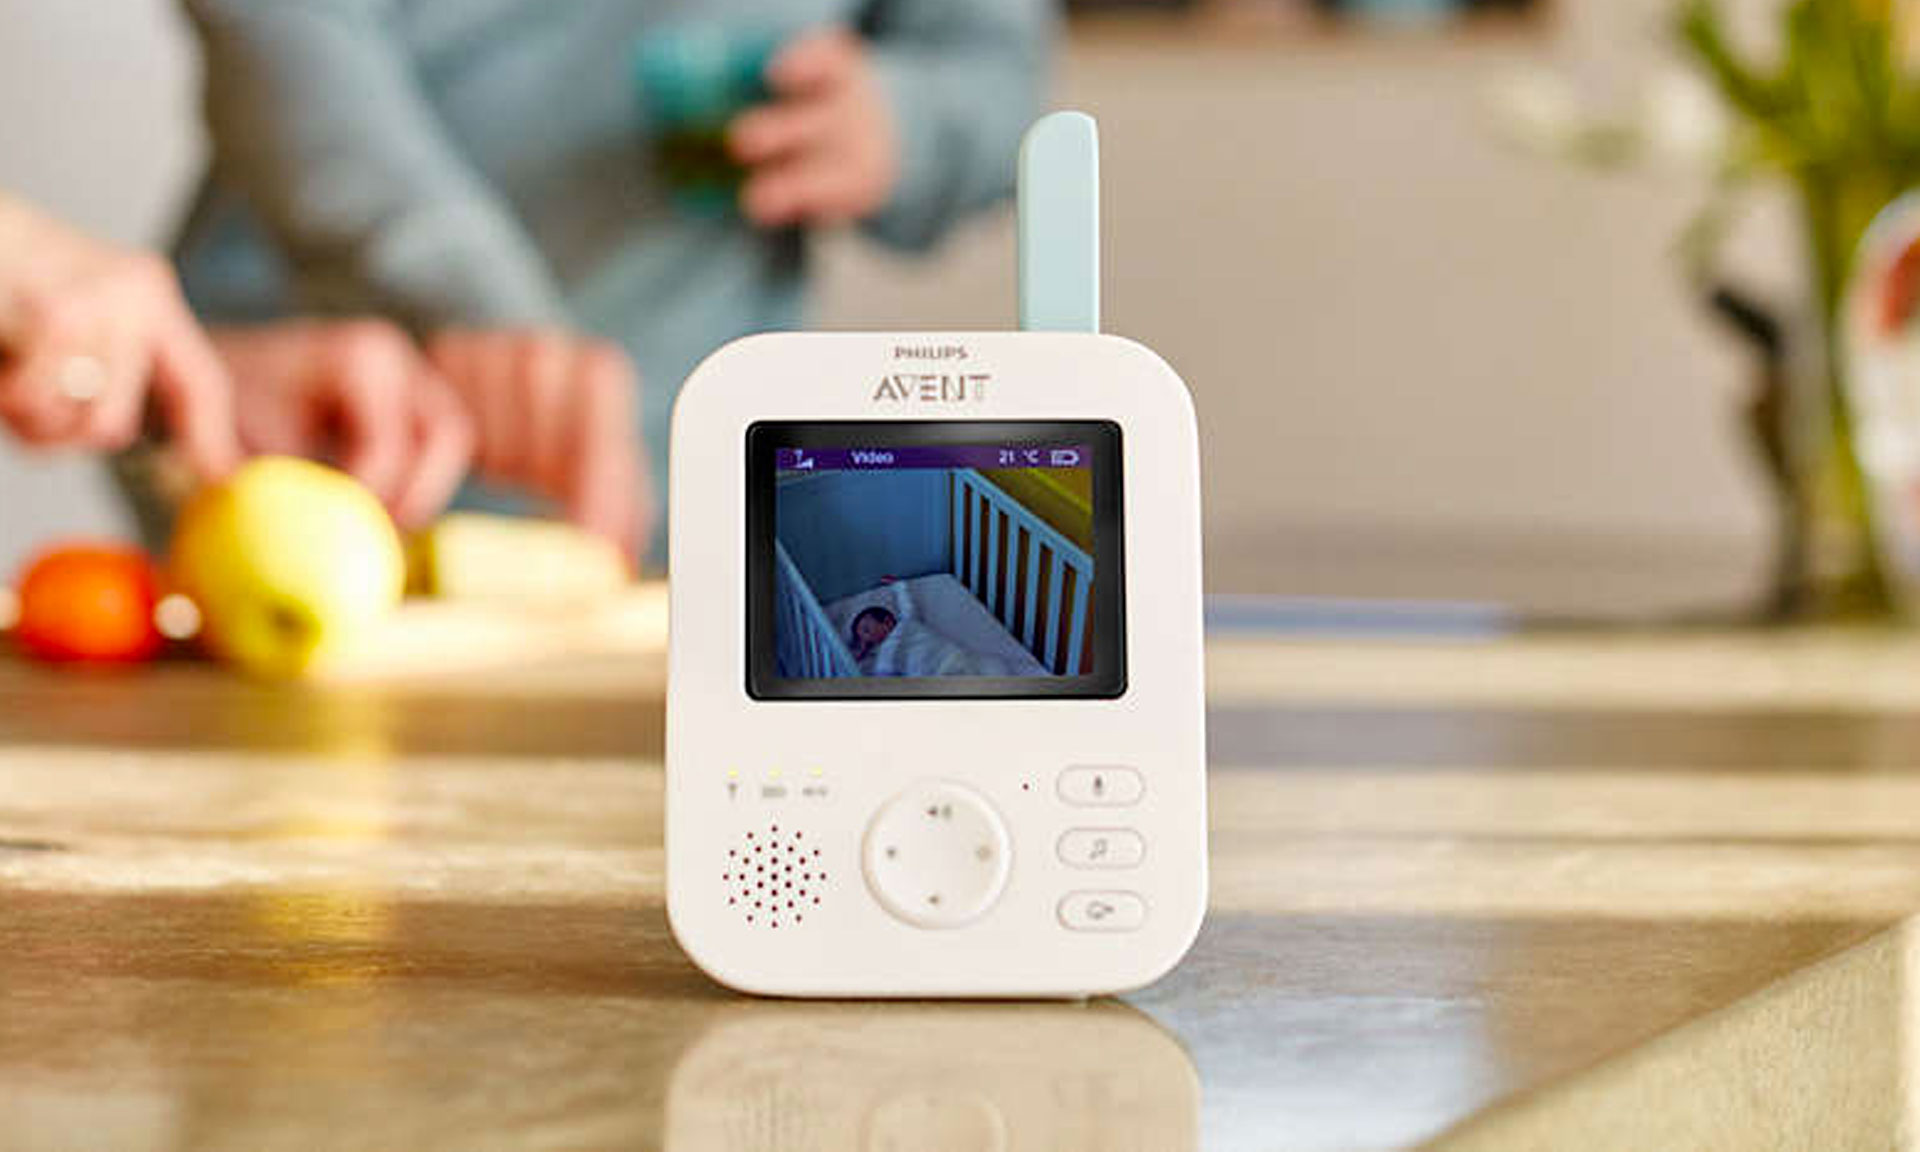 Philips Avent digital video baby monitors recalled over fire risk – Which? News